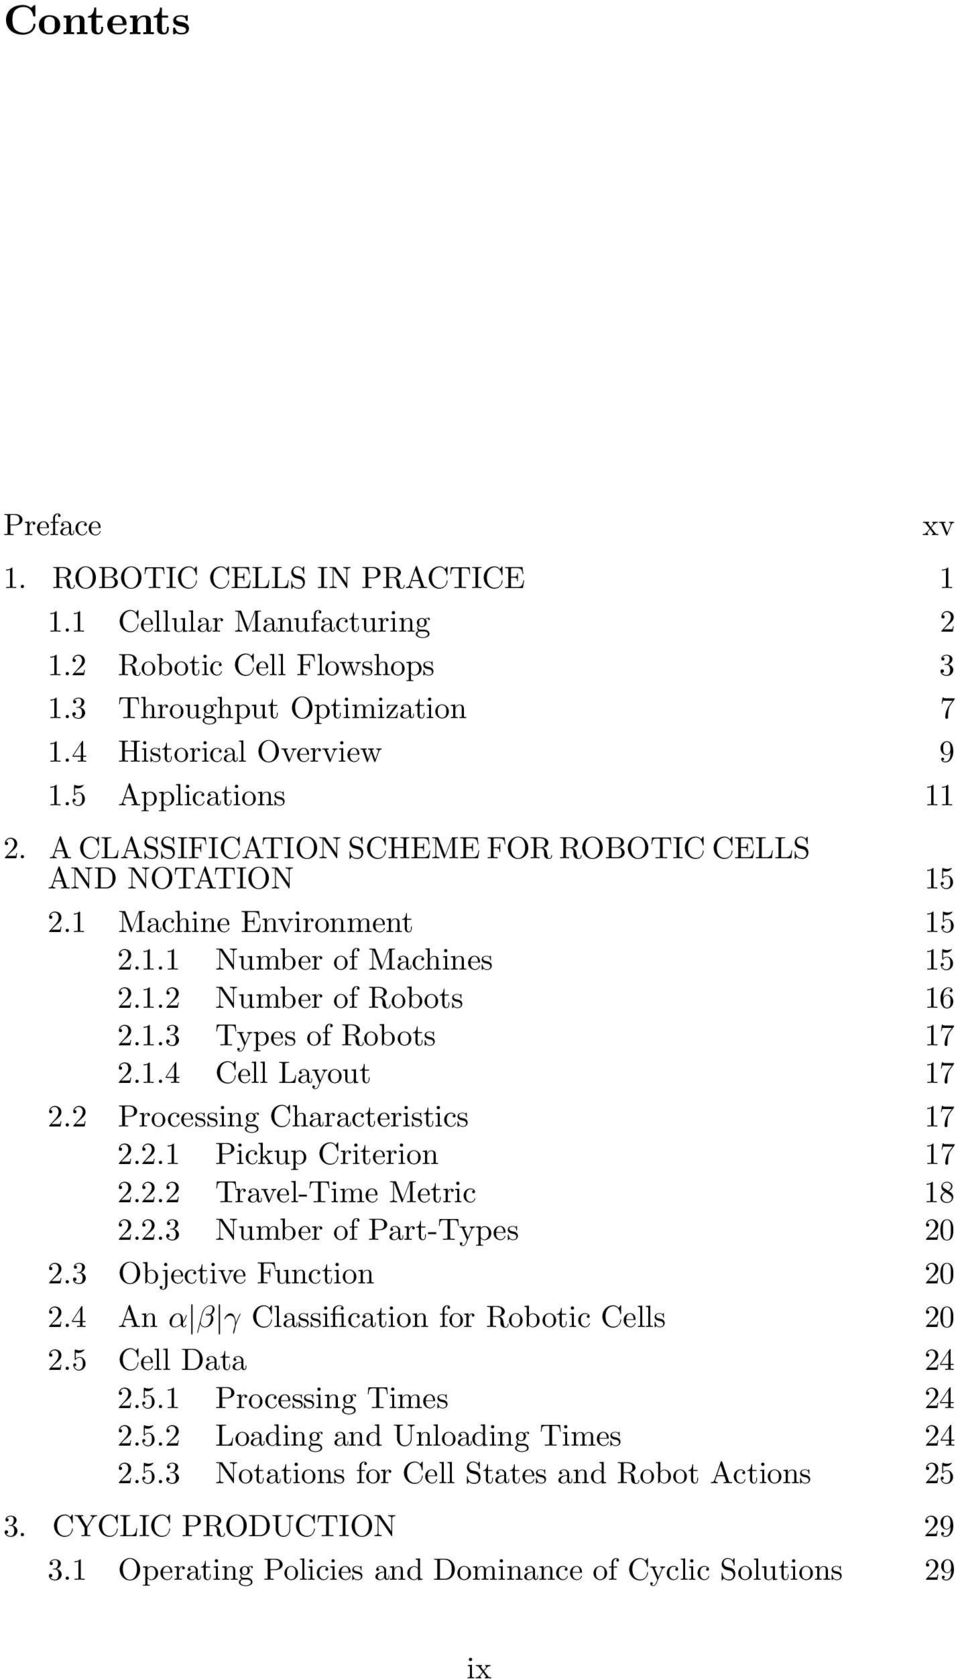 2 Processing Characteristics 17 2.2.1 Pickup Criterion 17 2.2.2 Travel-Time Metric 18 2.2.3 Number of Part-Types 20 2.3 Objective Function 20 2.4 An α β γ Classification for Robotic Cells 20 2.